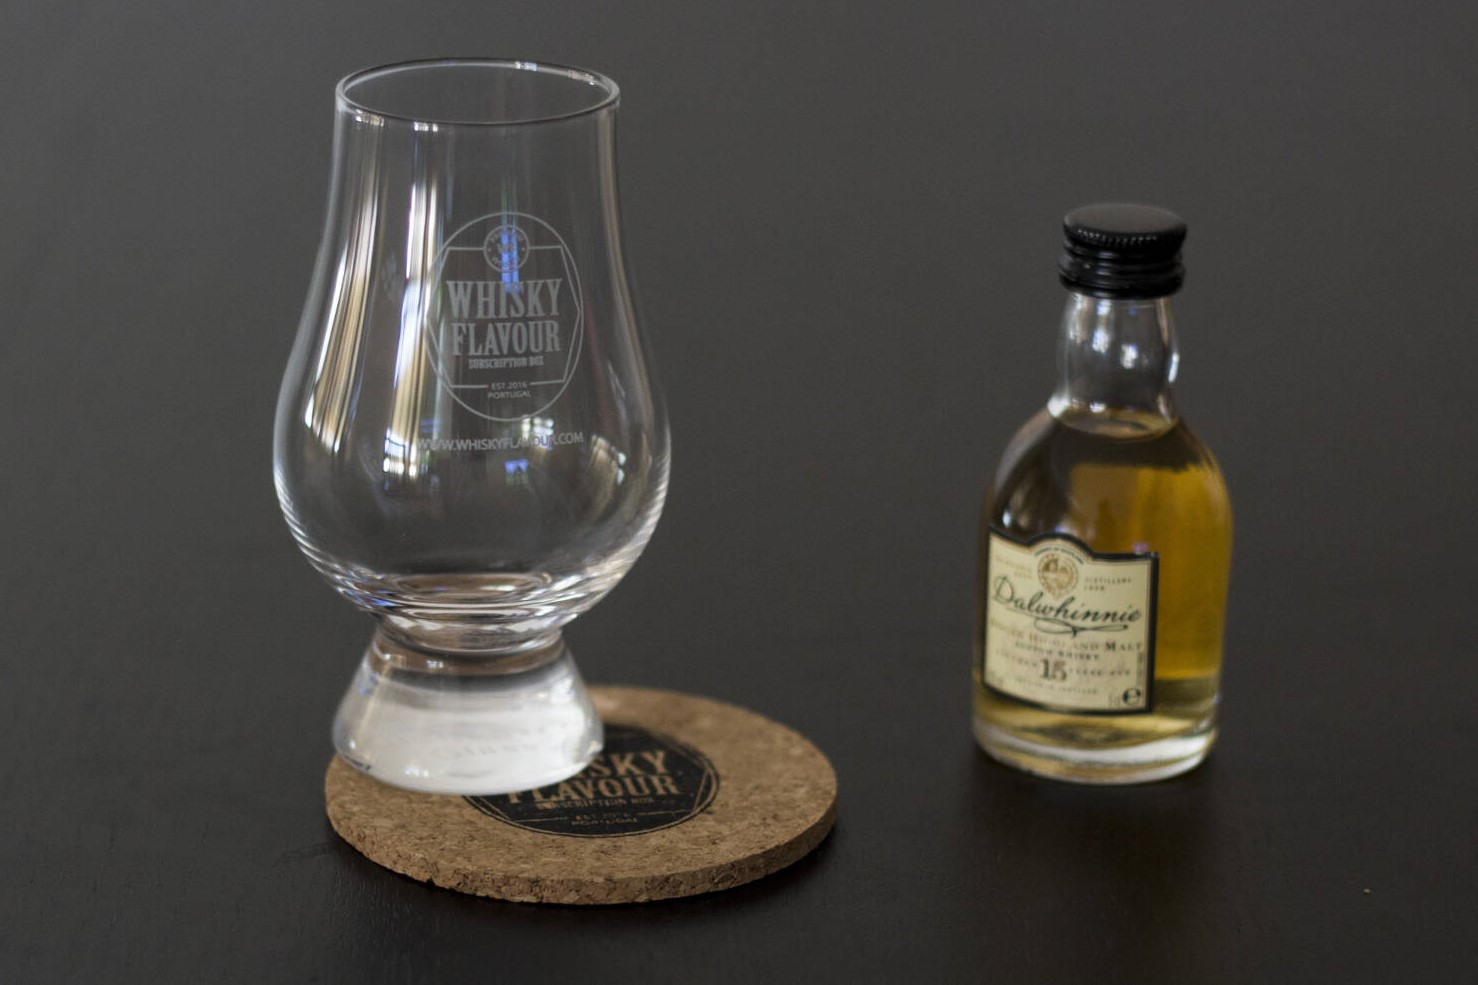 Glencairn glass with a whisky miniature from our whisky subscription